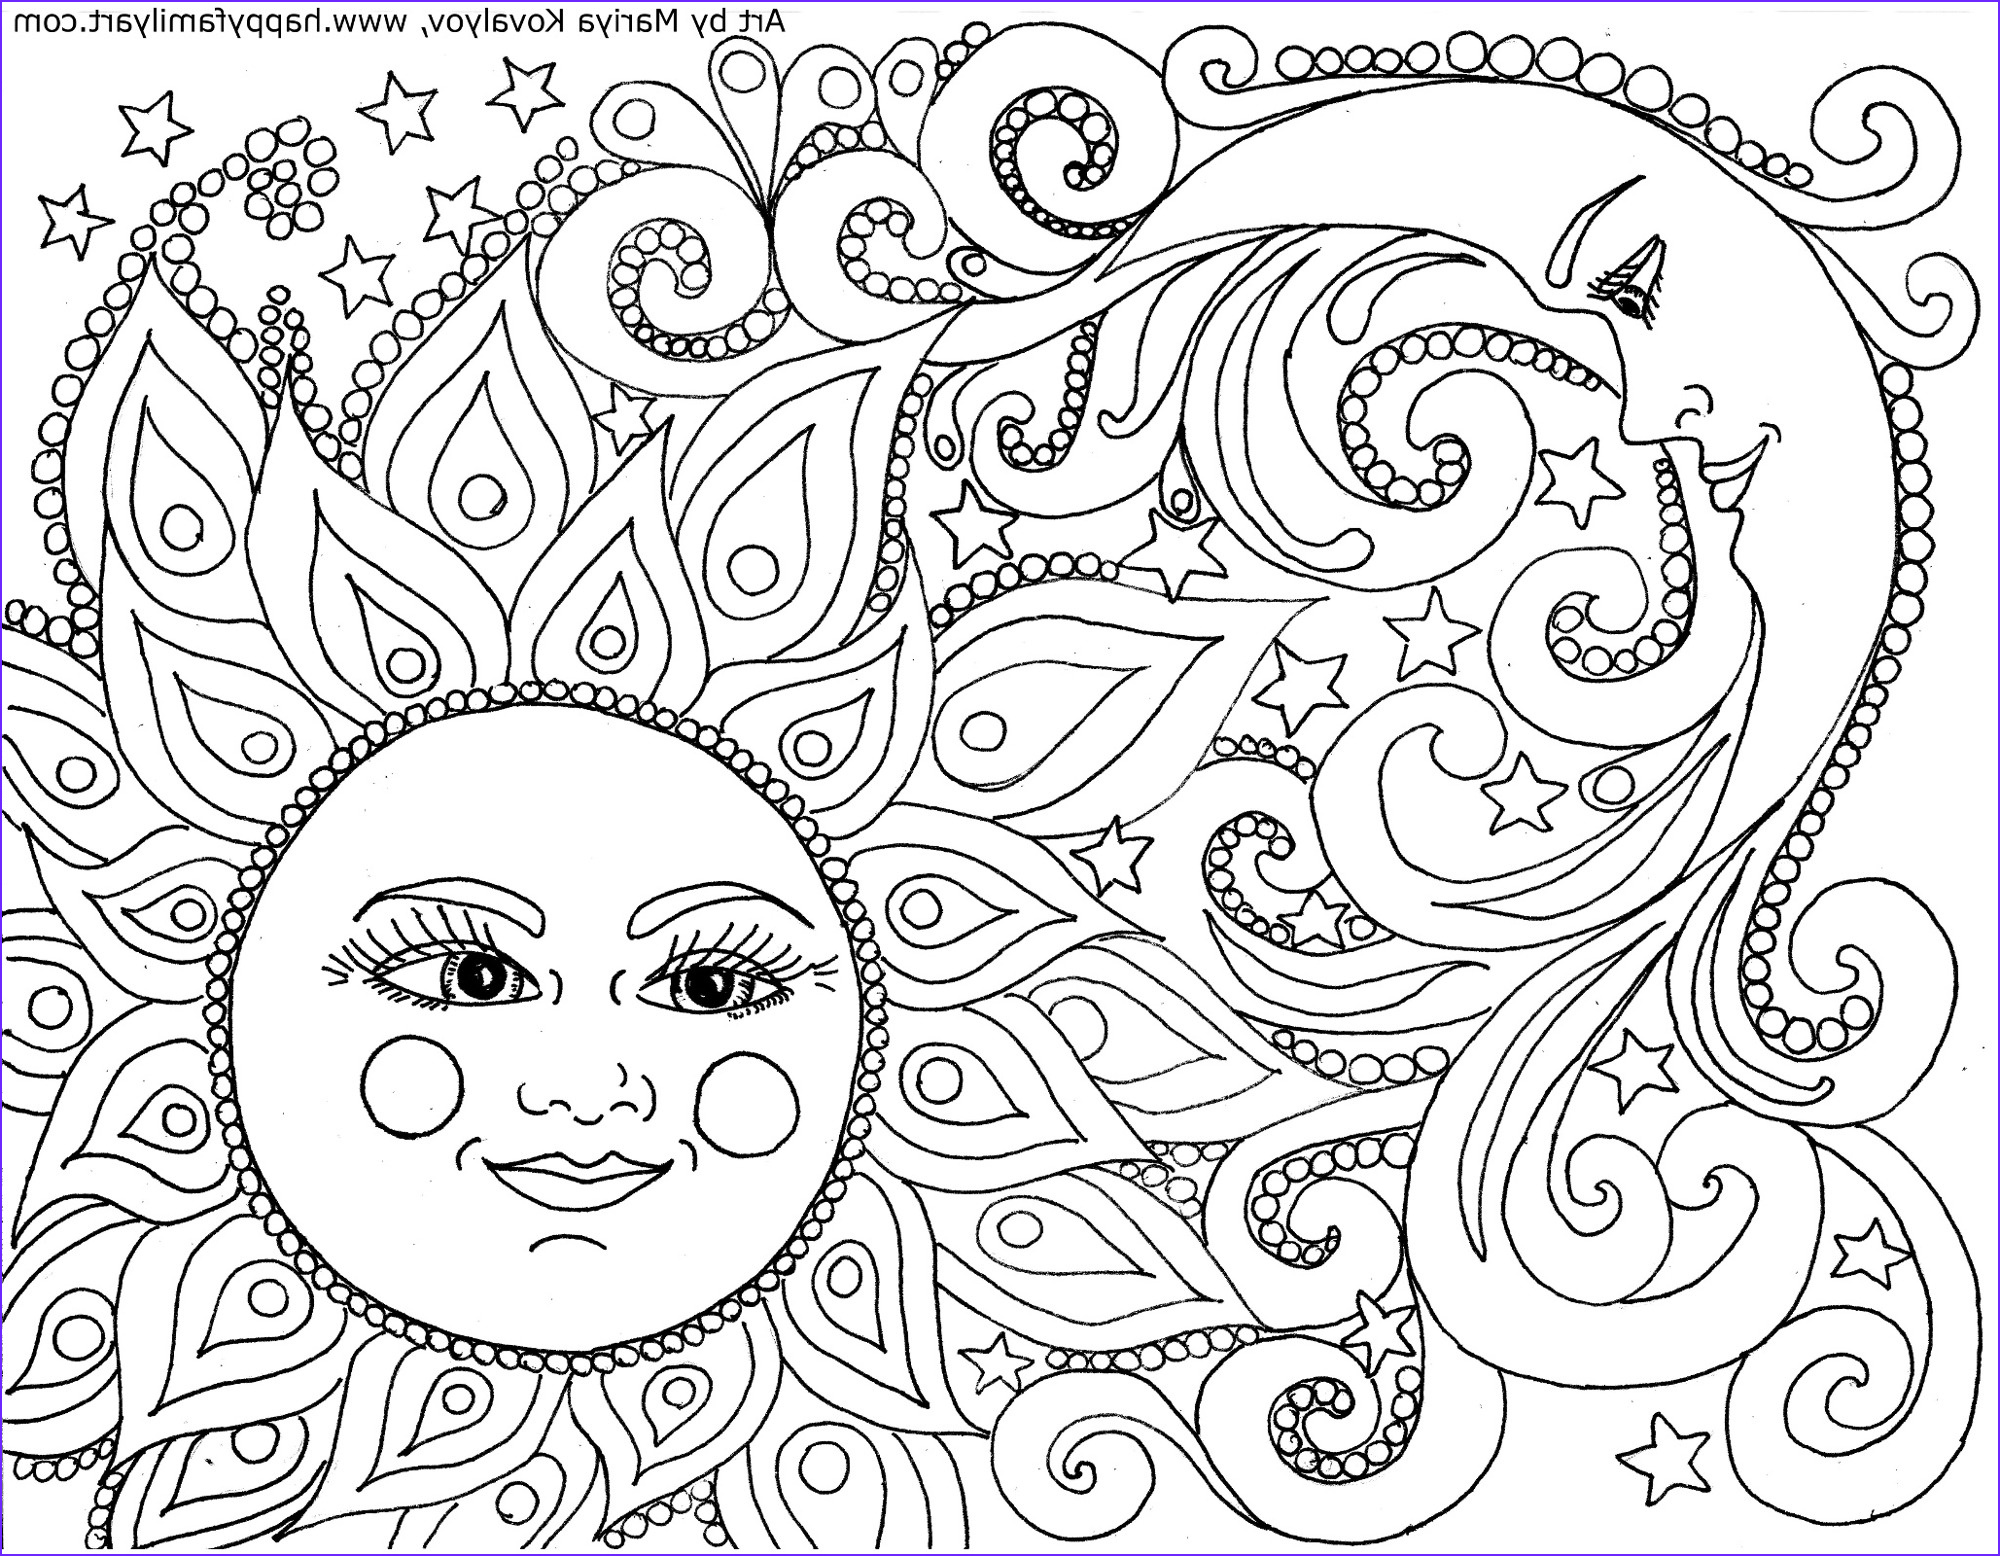 15 New Cool Adult Coloring Pages Collection